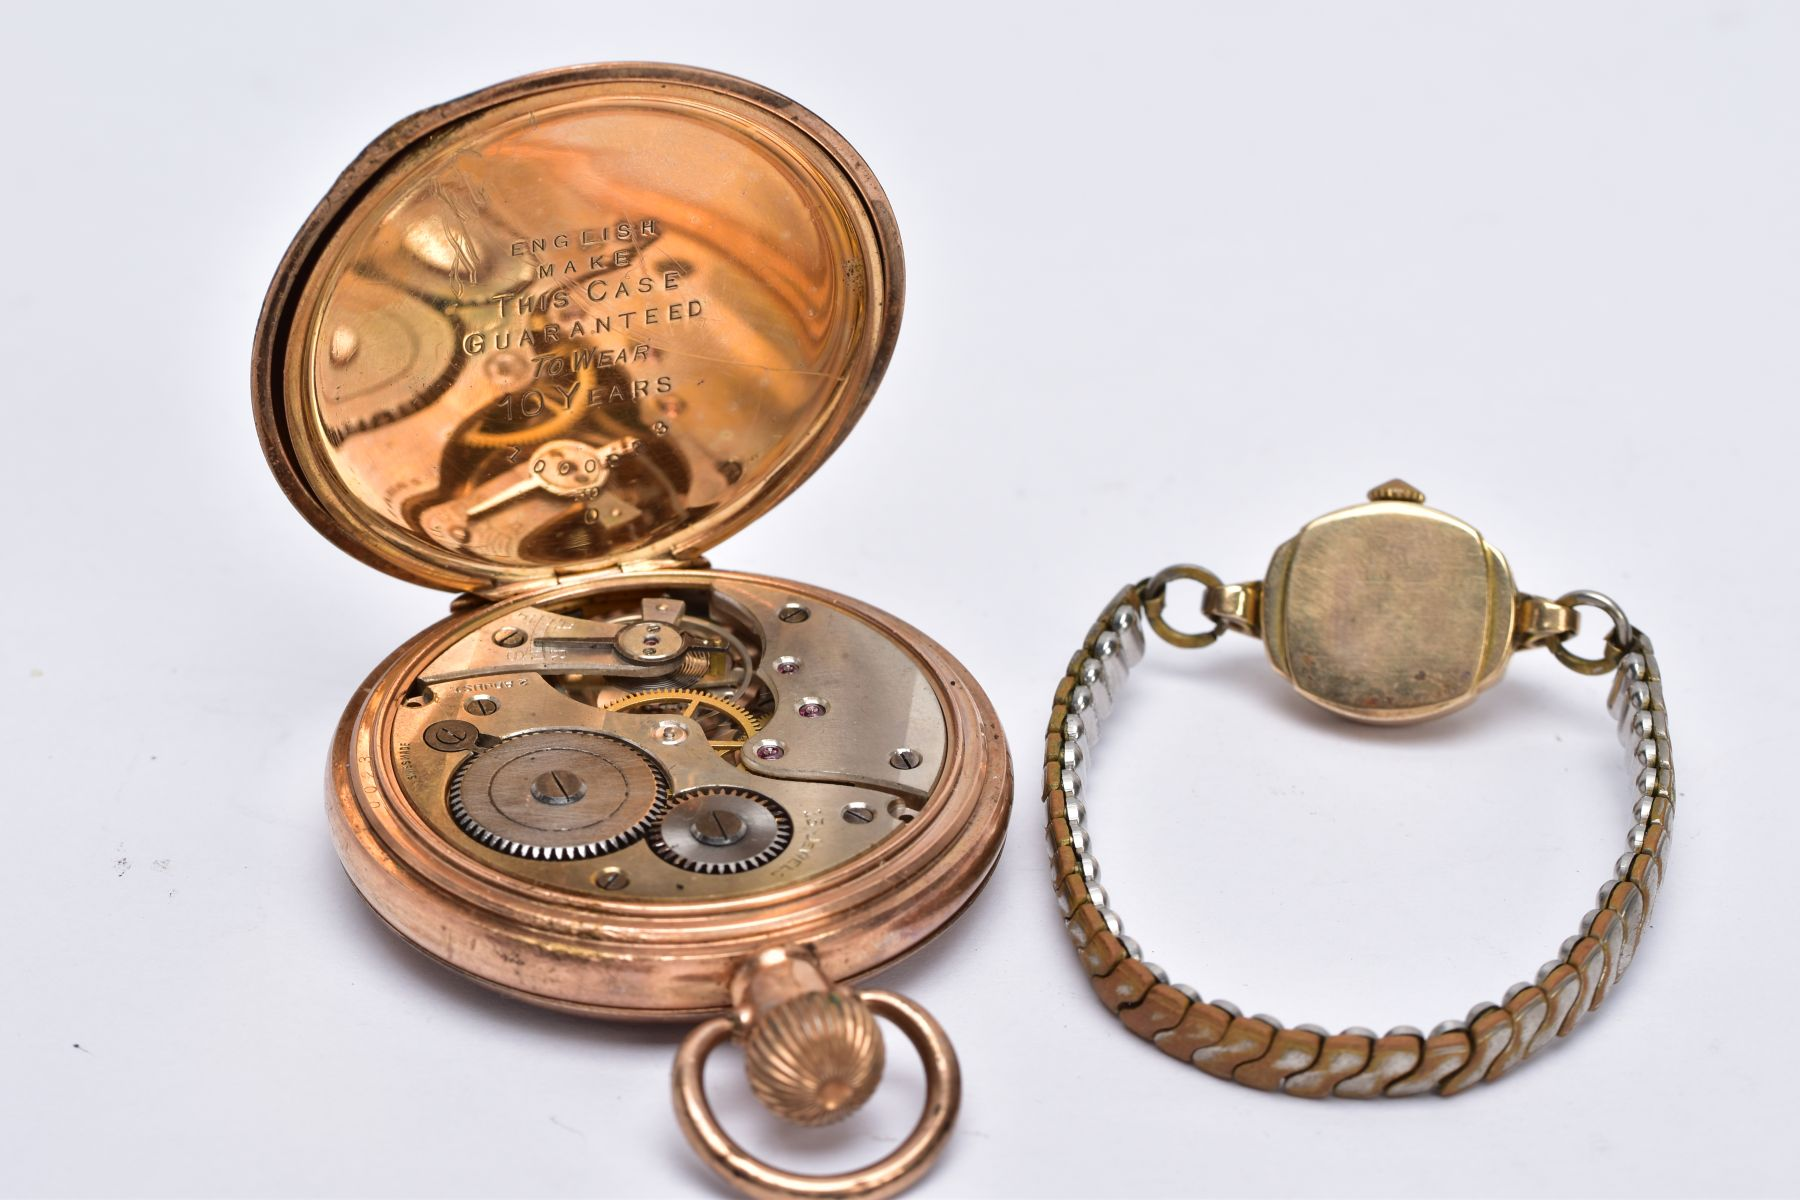 A LADIES 9CT GOLD CASED WRISTWATCH AND A GOLD PLATED POCKET WATCH, the ladies wristwatch with a - Image 4 of 5